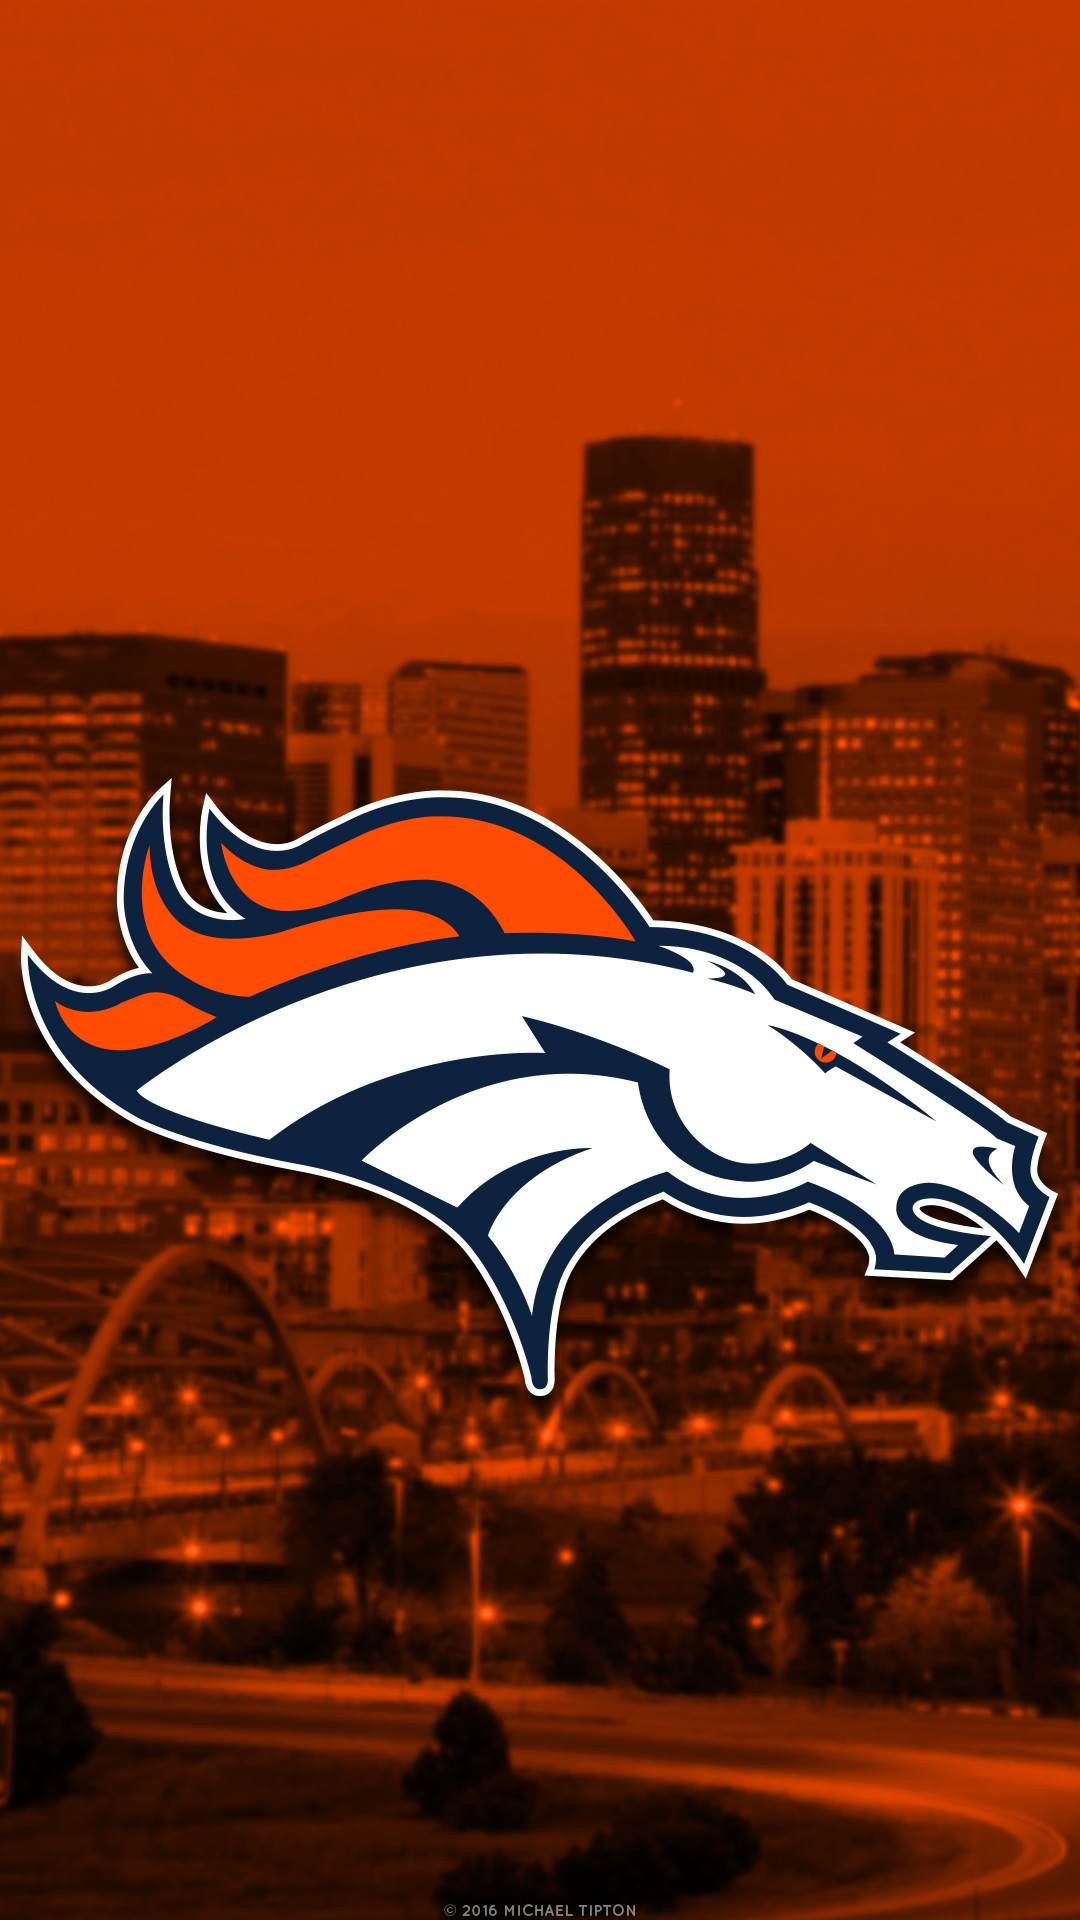 … galaxy Denver Broncos city 2017 logo wallpaper free iphone 5, 6, 7,  galaxy s6